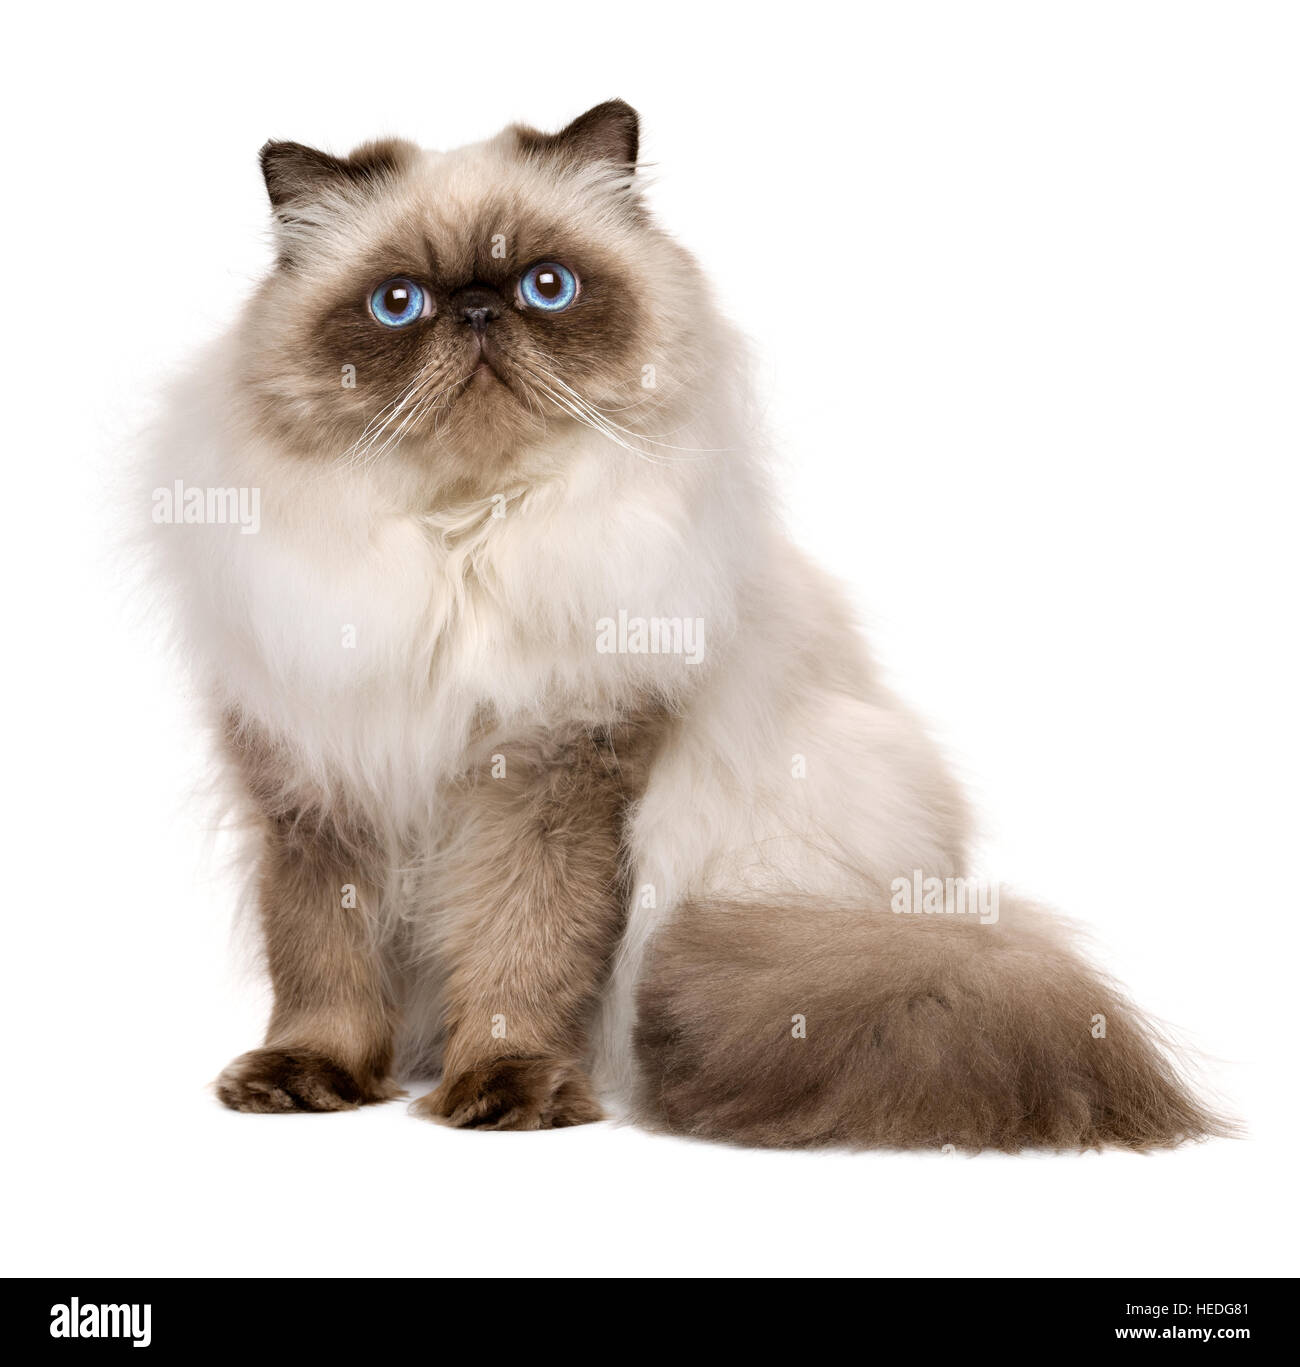 Cute 1 Year Old Seal Colourpoint Persian Cat Is Sitting Stock Photo Alamy